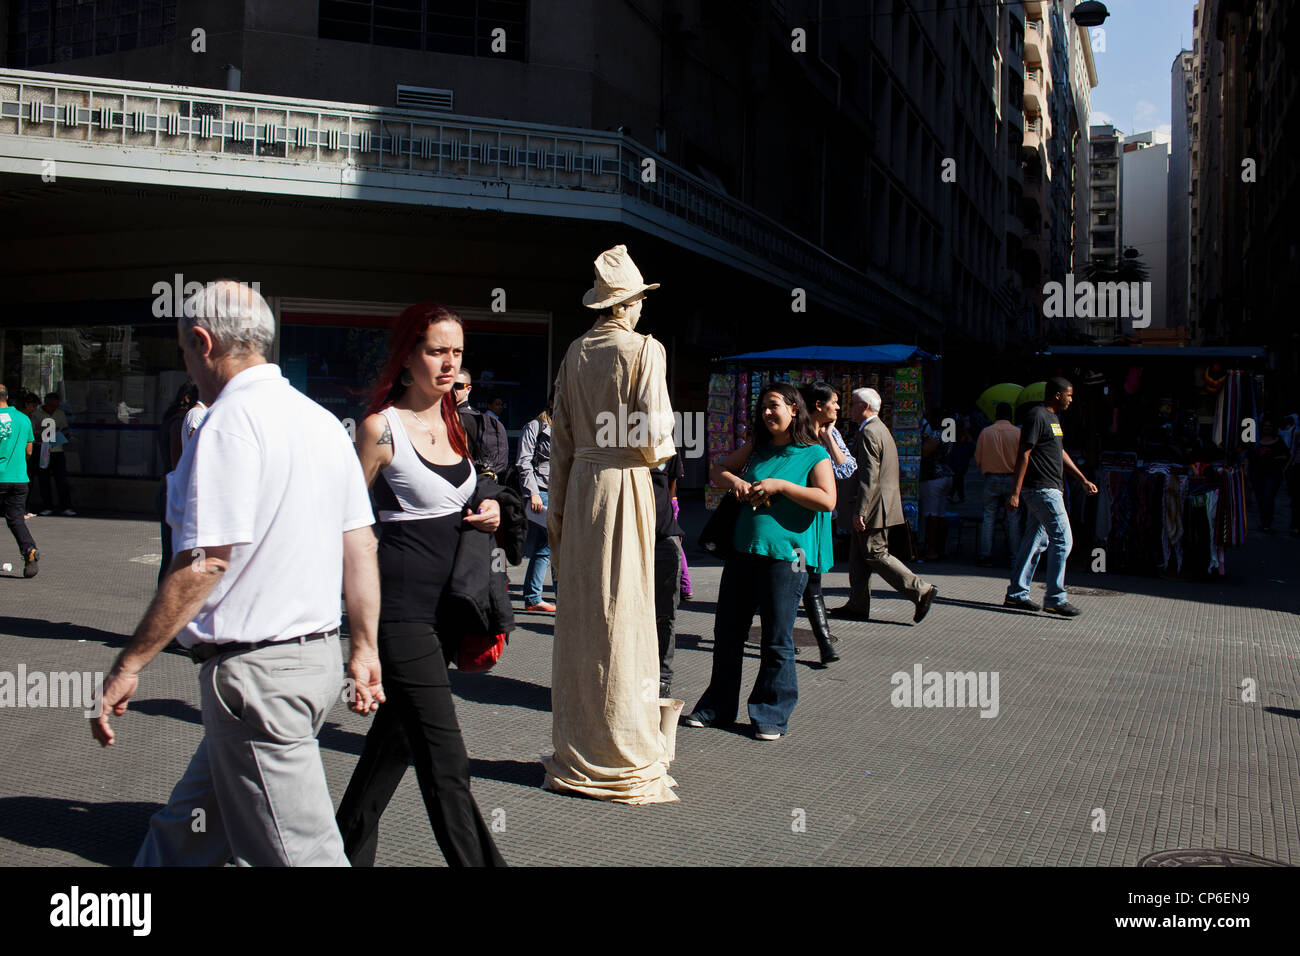 Living statue downtown Sao Paulo Brazil Mime artist posing for hours in street like a statue with realistic statue - Stock Image